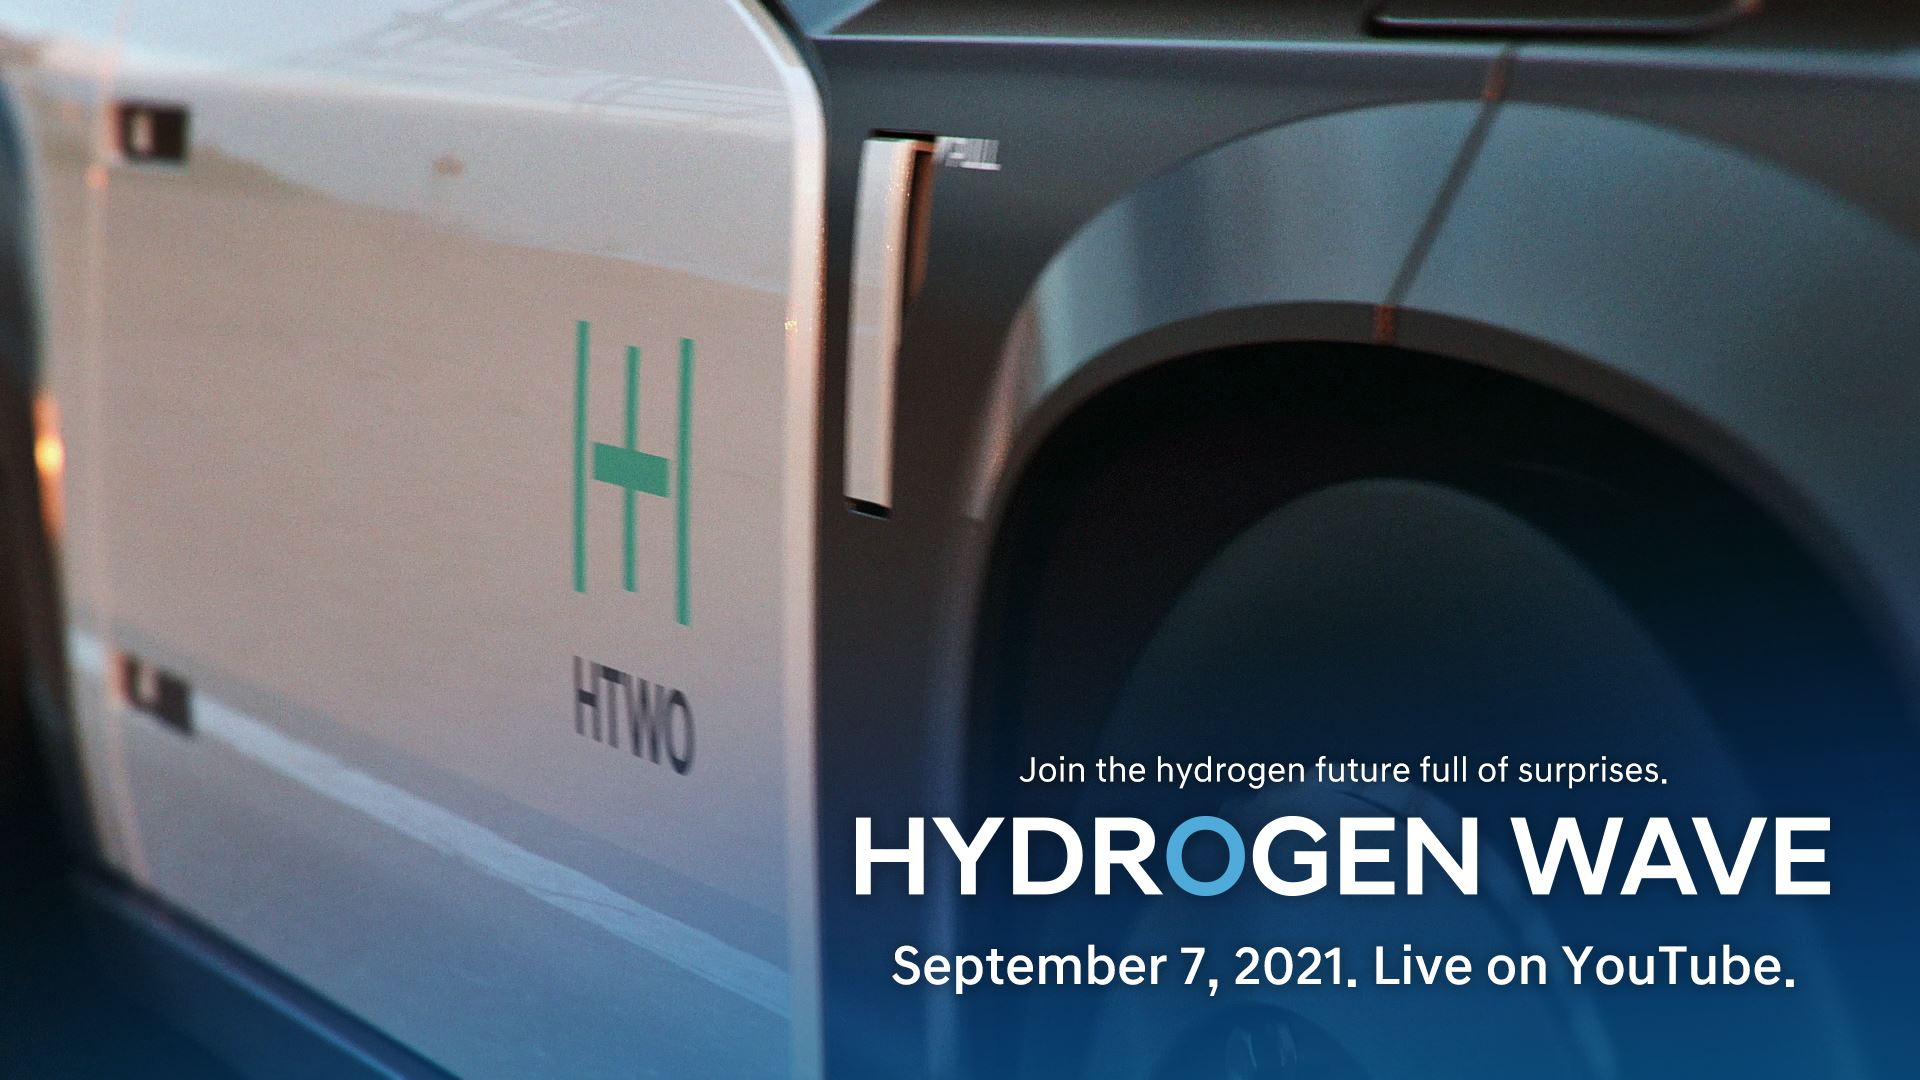 Hyundai Motor Group to Unveil its Future Vision for Hydrogen Society at the 'Hydrogen Wave' Global Forum in September - Image 2